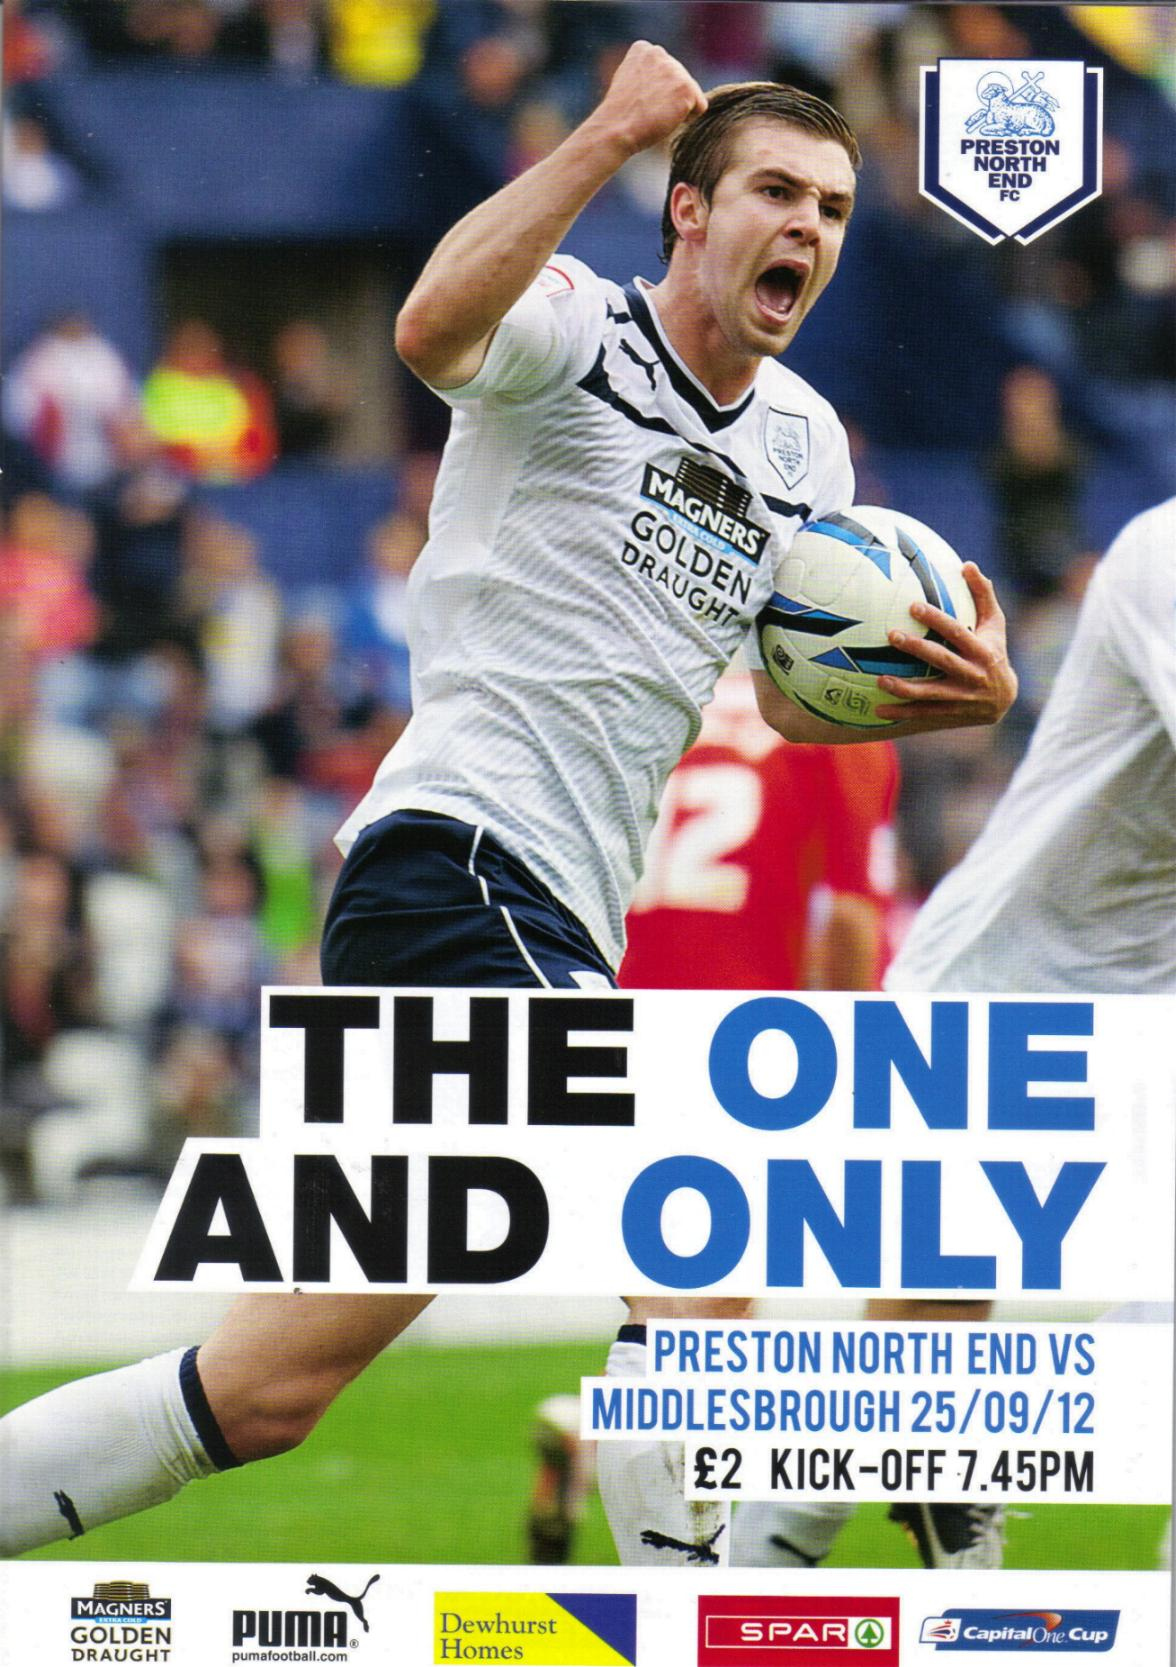 PRESTON NORTH END v MIDDLESBROUGH 2012/13 (CAPITAL ONE CUP)